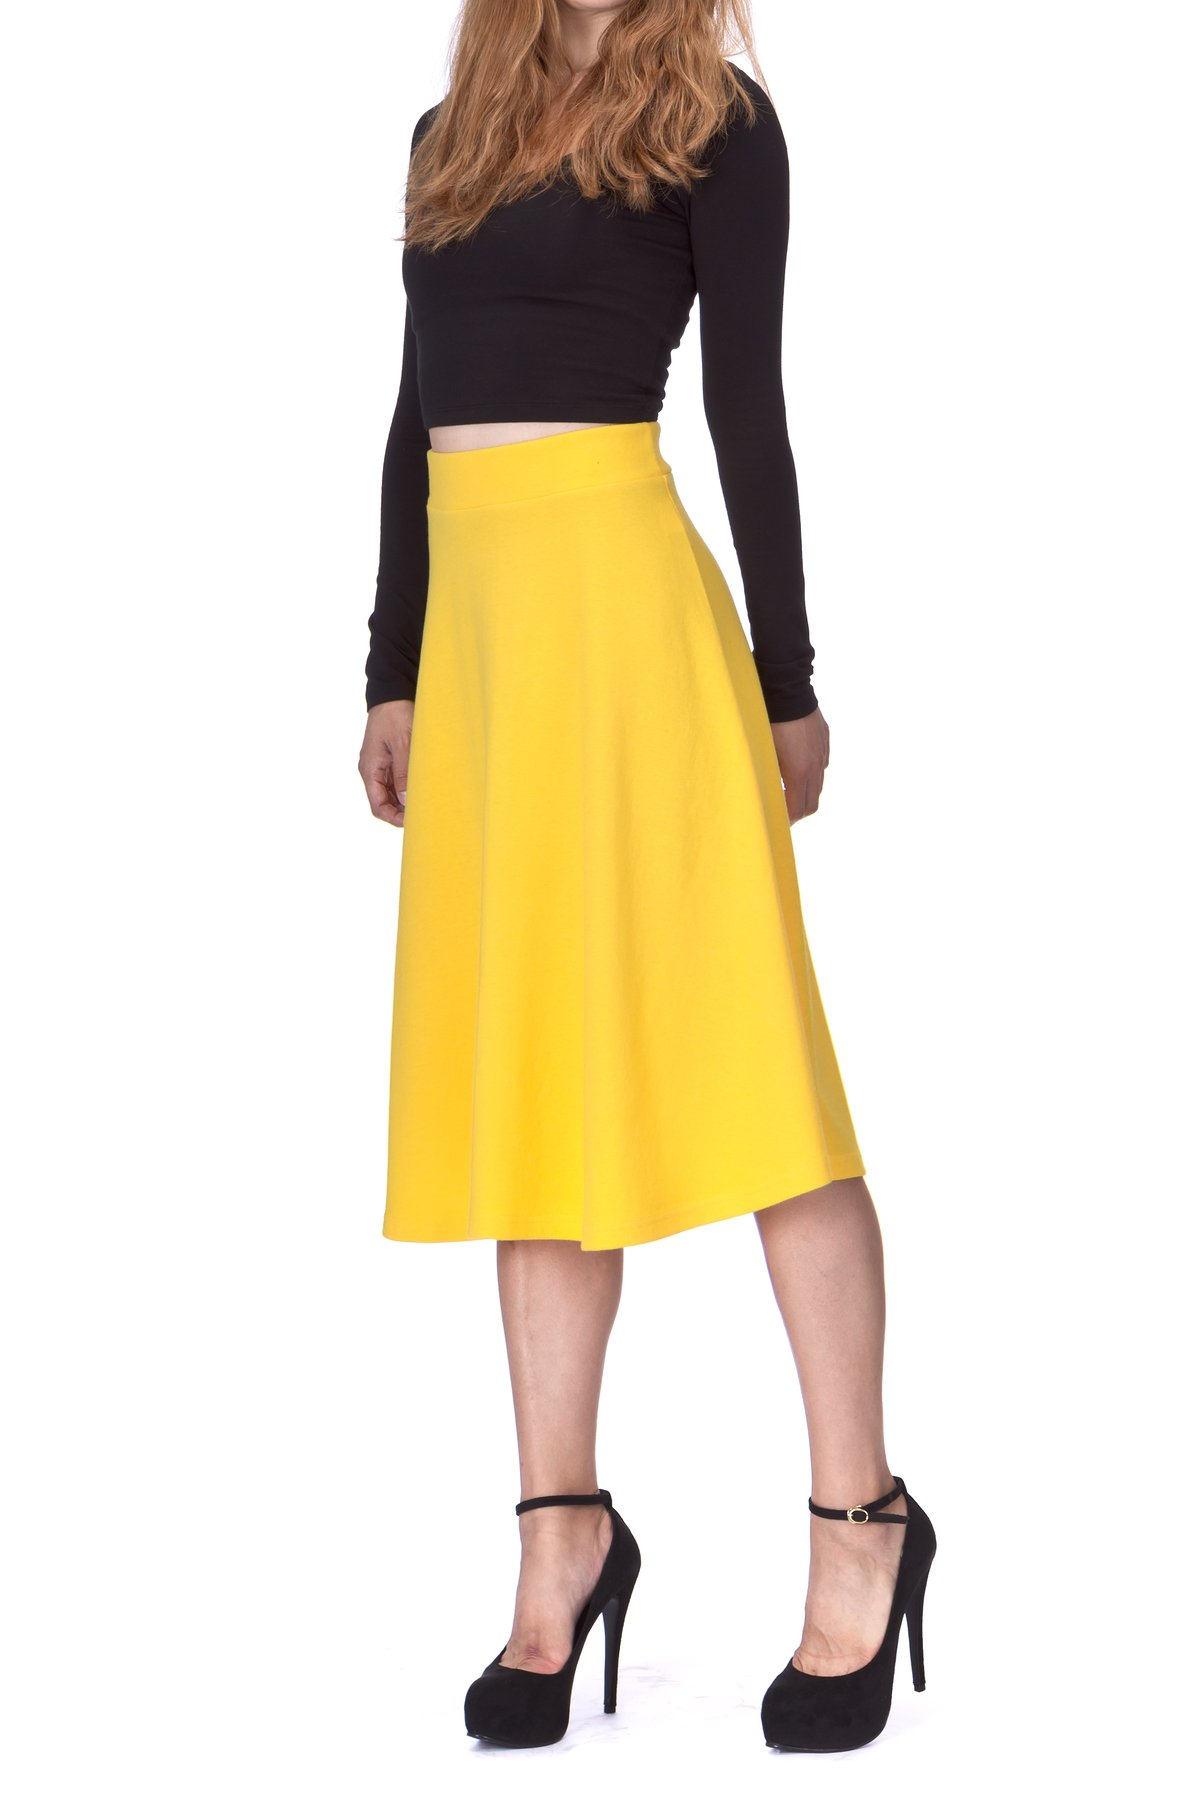 Everyday High Waist A Line Flared Skater Midi Skirt Yellow 02